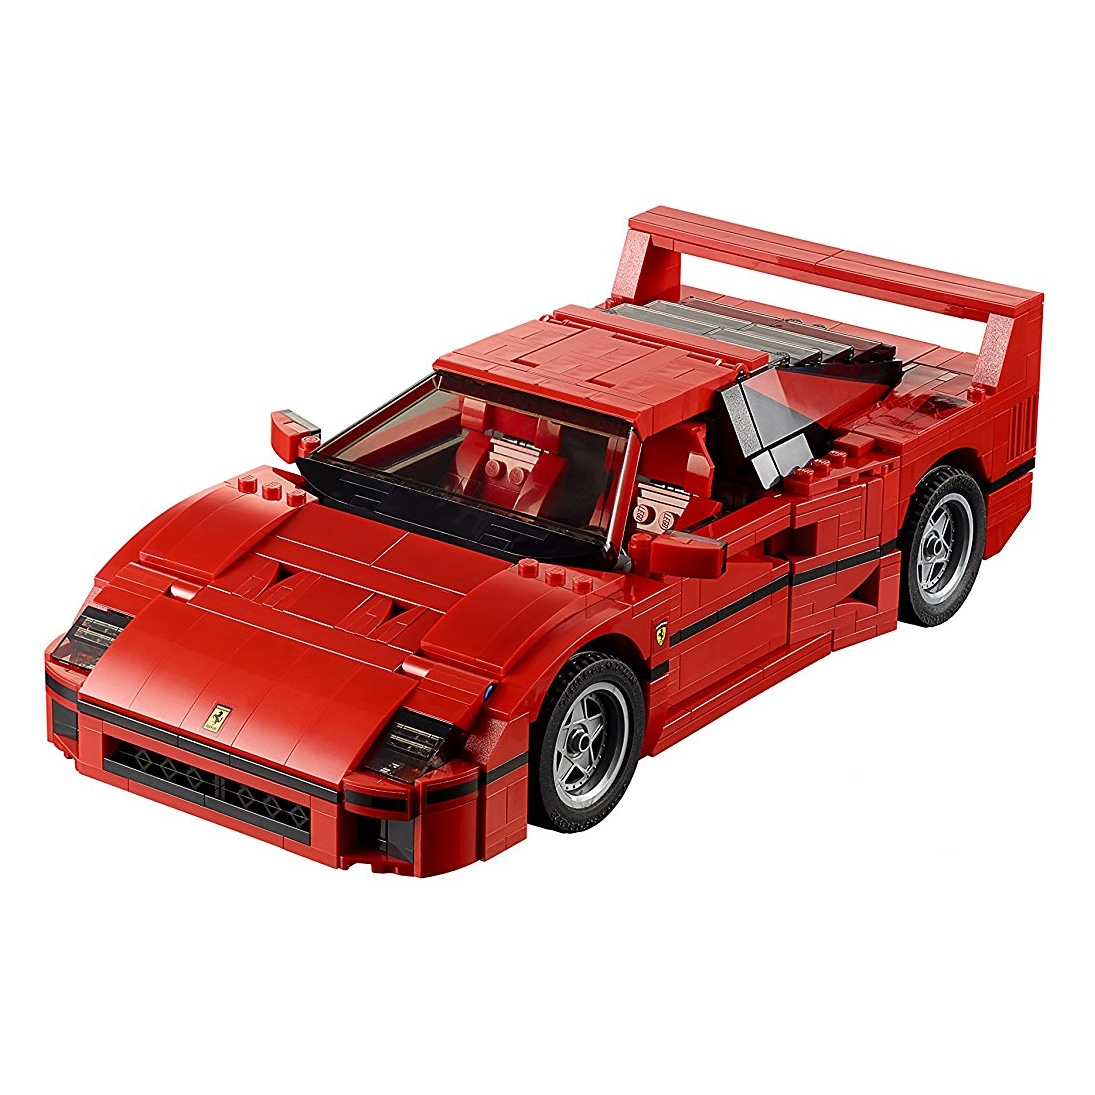 9 Best Lego Cars For 2018 Fun Lego Car Sets For Kids Amp Car Enthusiasts